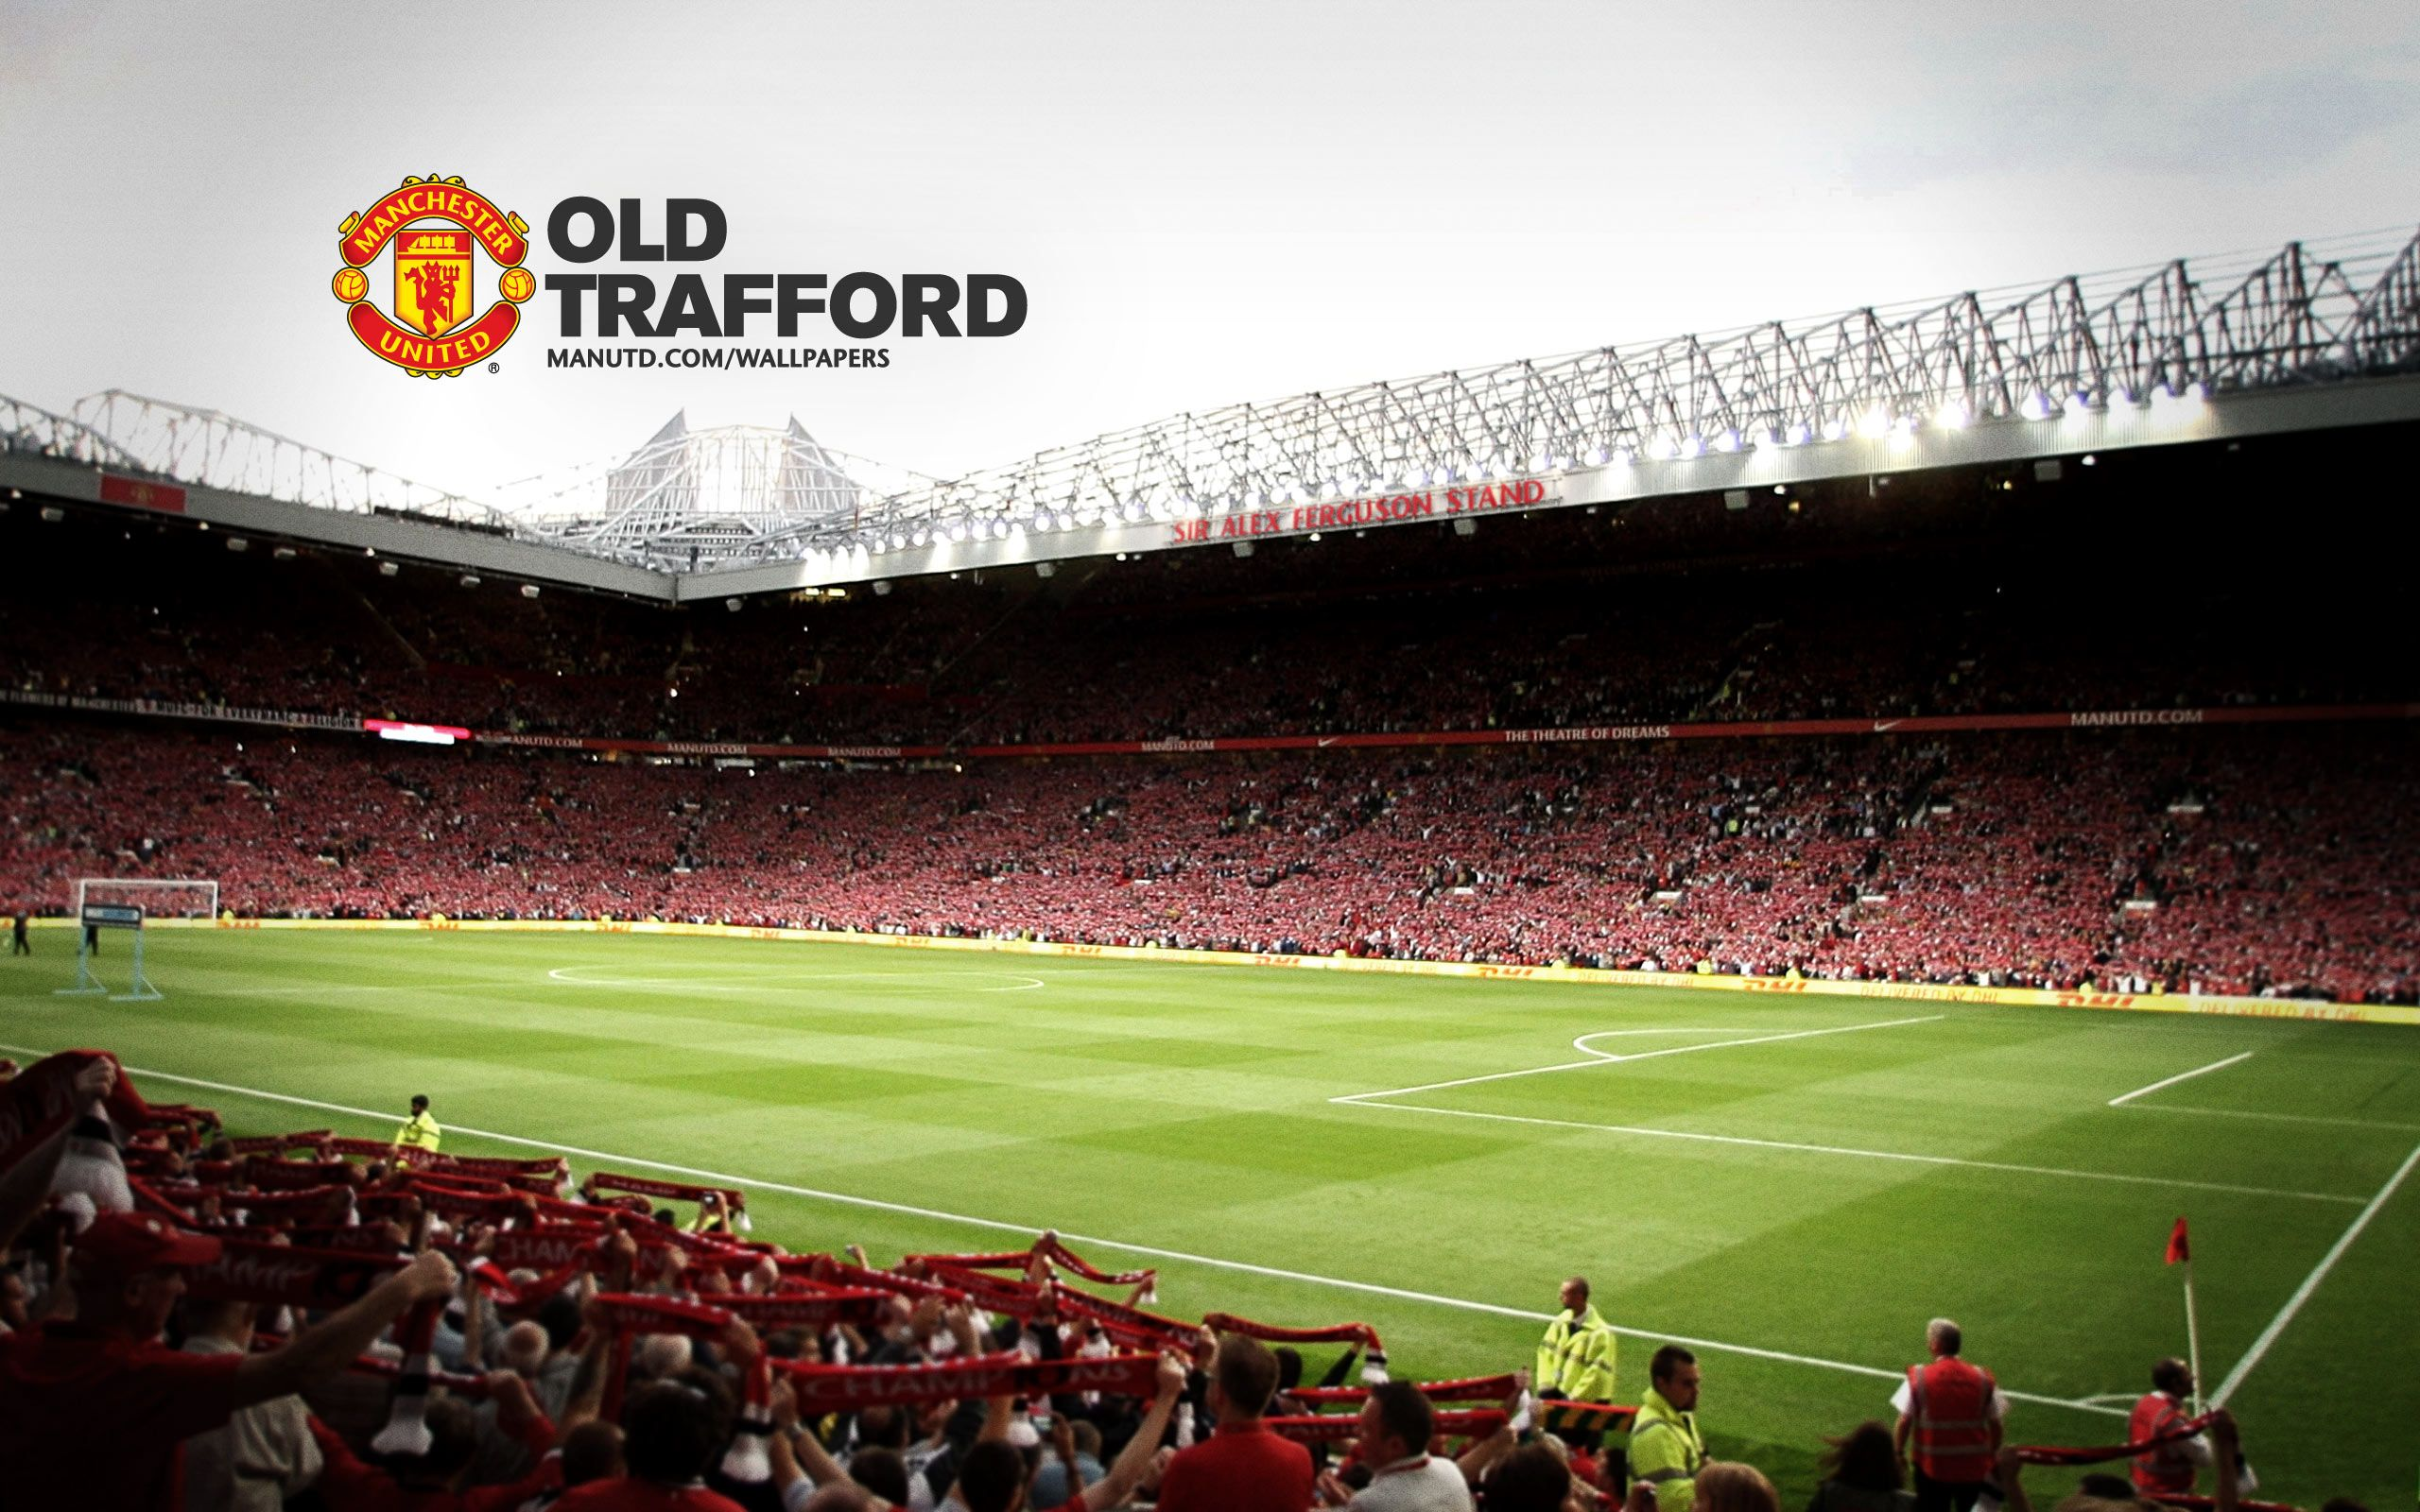 Most Beautiful Manchester United Wallpapers Hd Wallpaper Manchester United 458